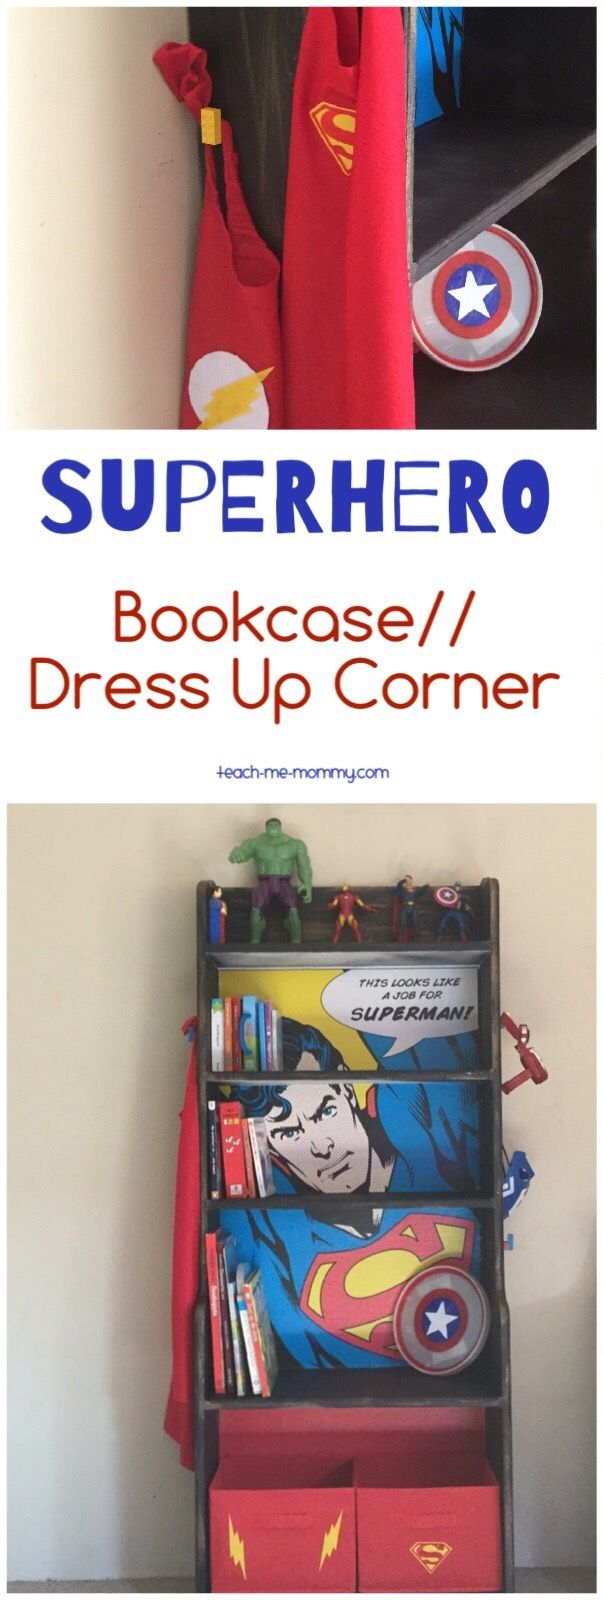 Awesome upcycling project-superhero bookcase!                                                                                                                                                                                 More